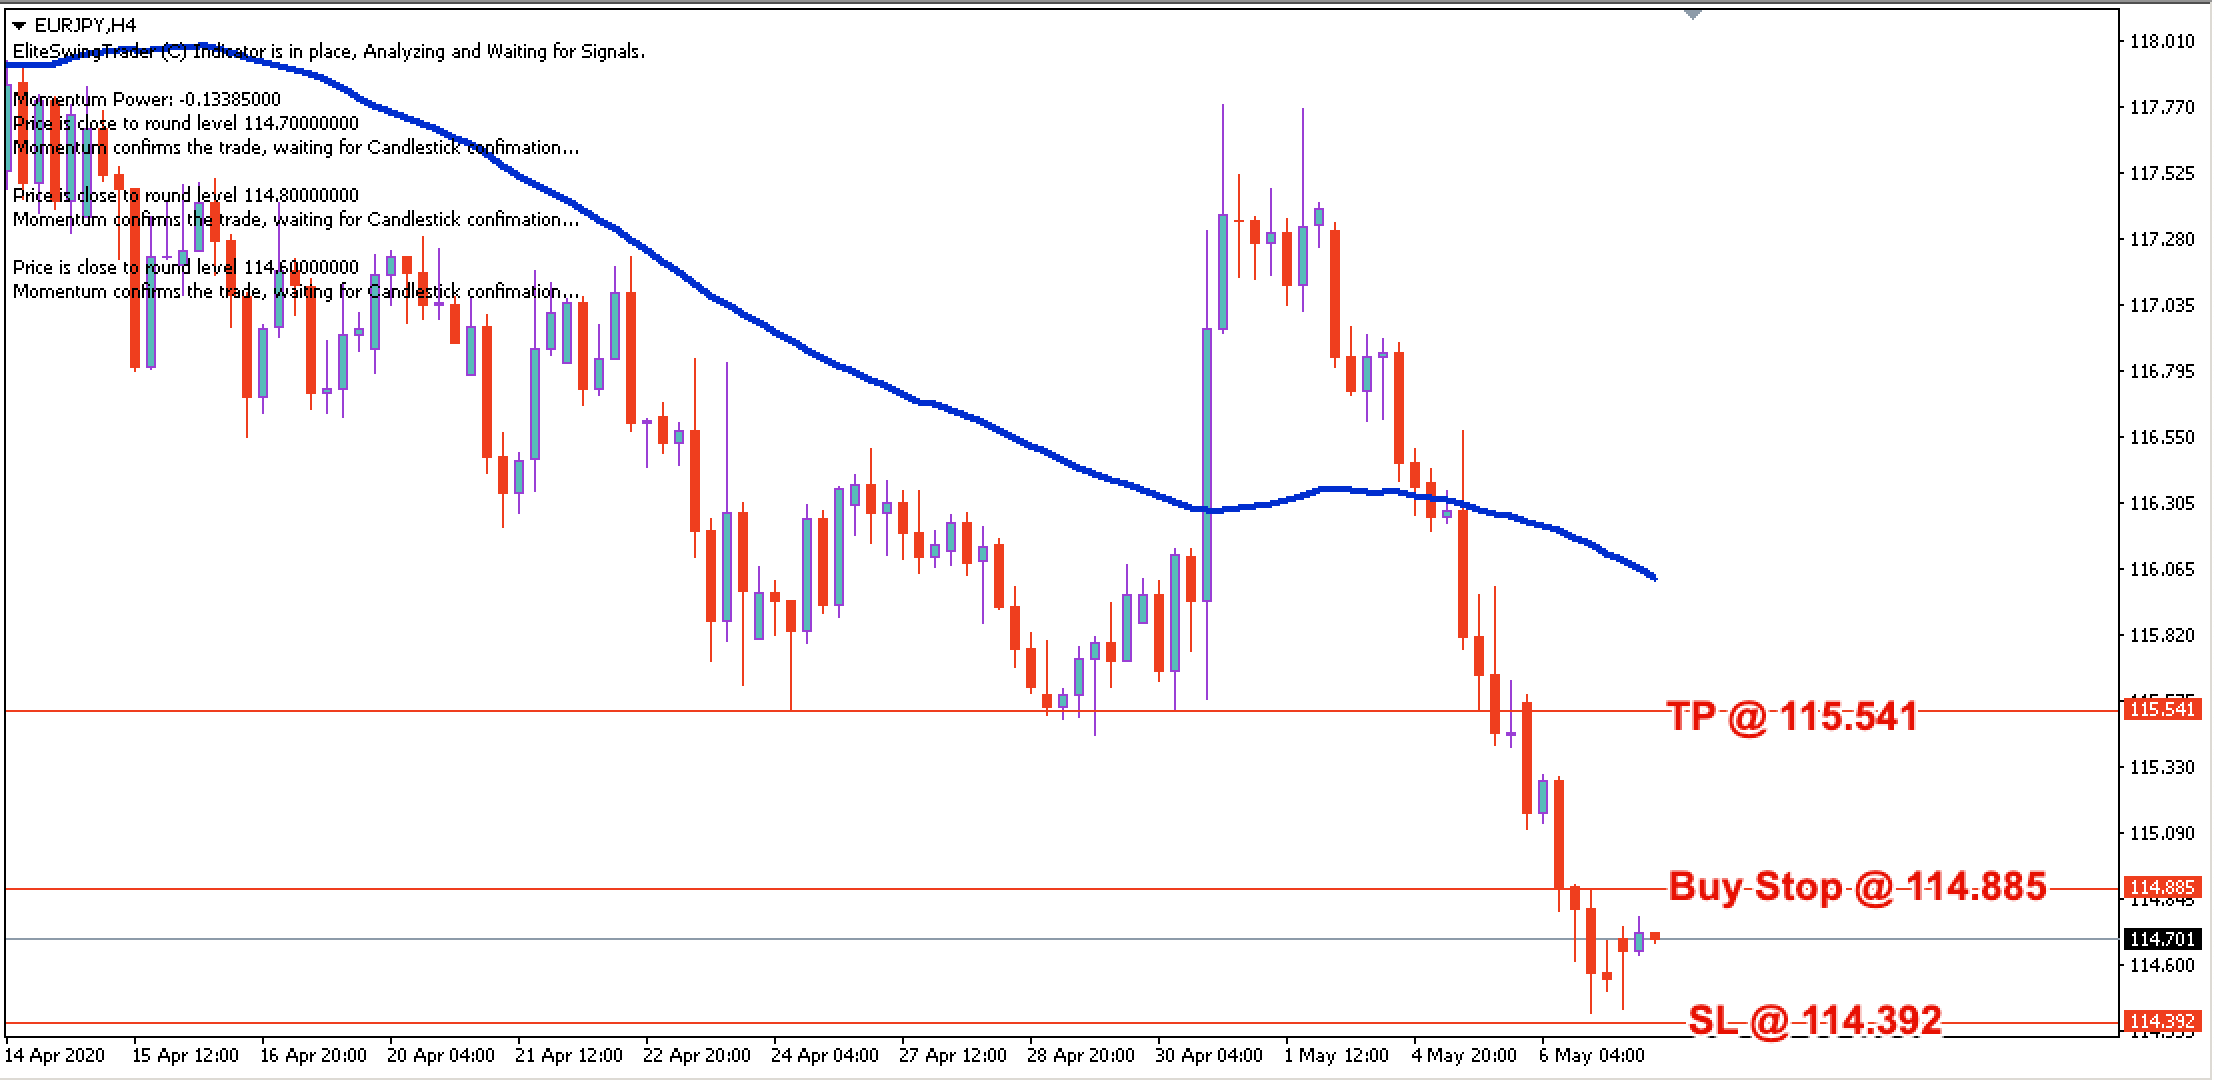 EUR/JPY Daily Price Forecast – 7th May 2020